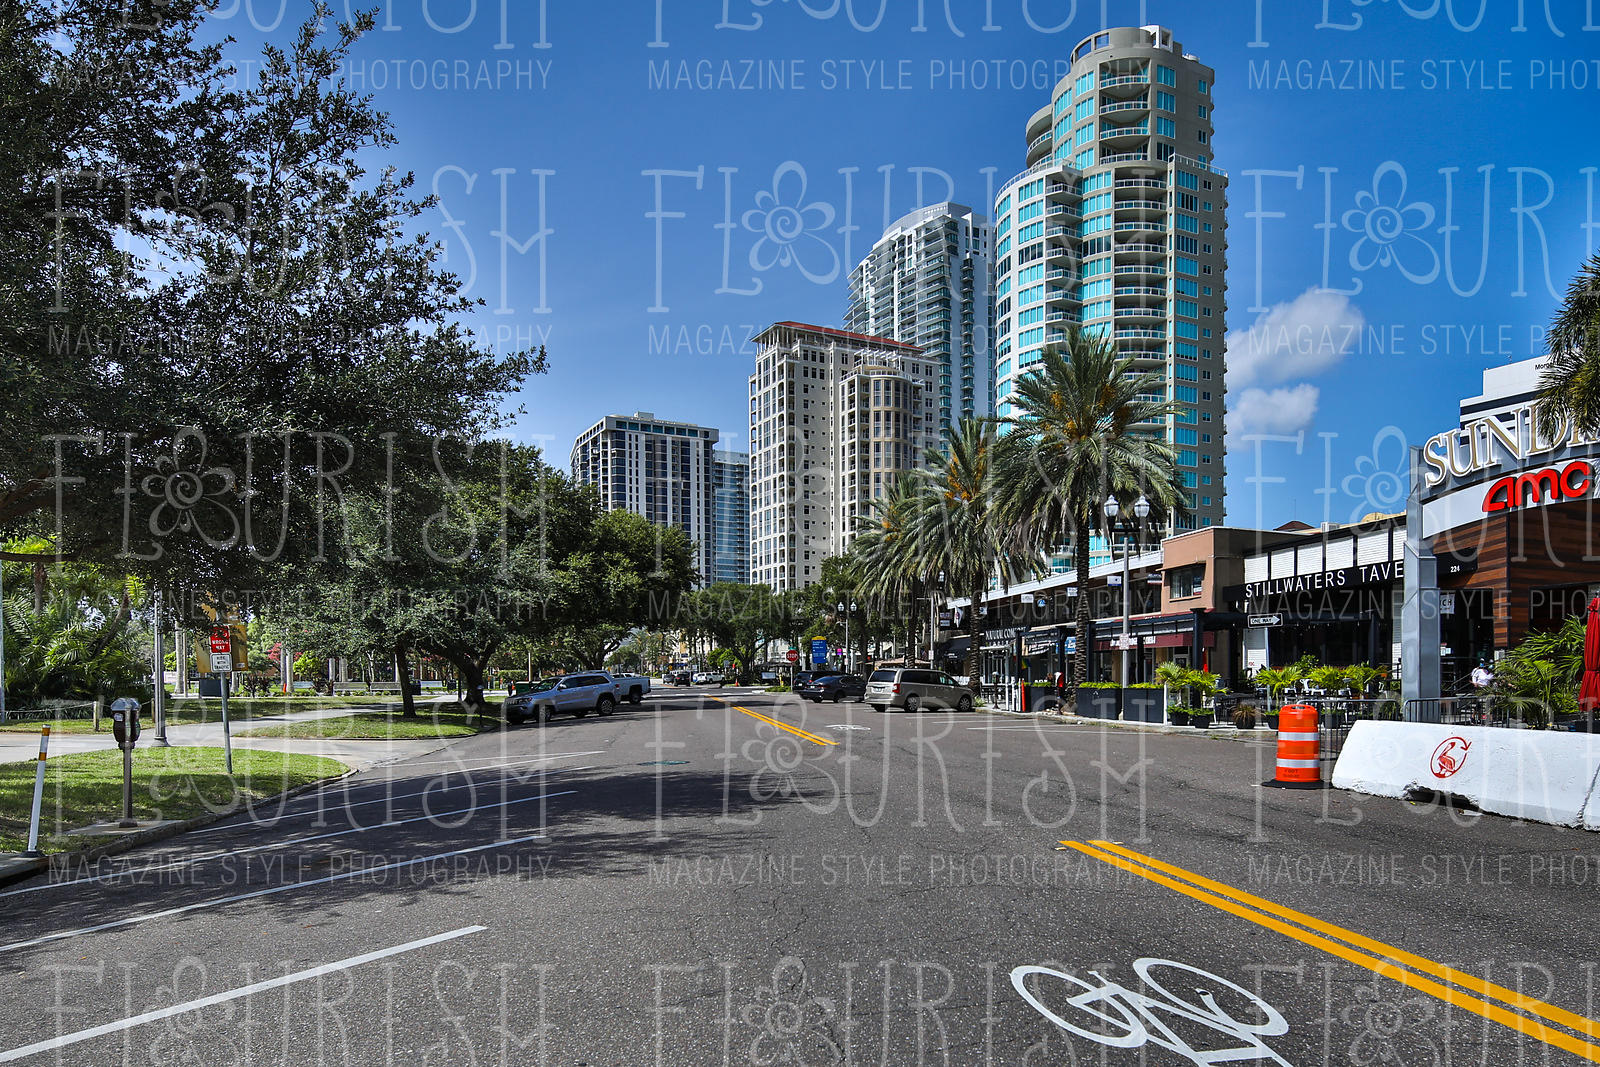 Architectural_St_Pete_Beach_Drive-5